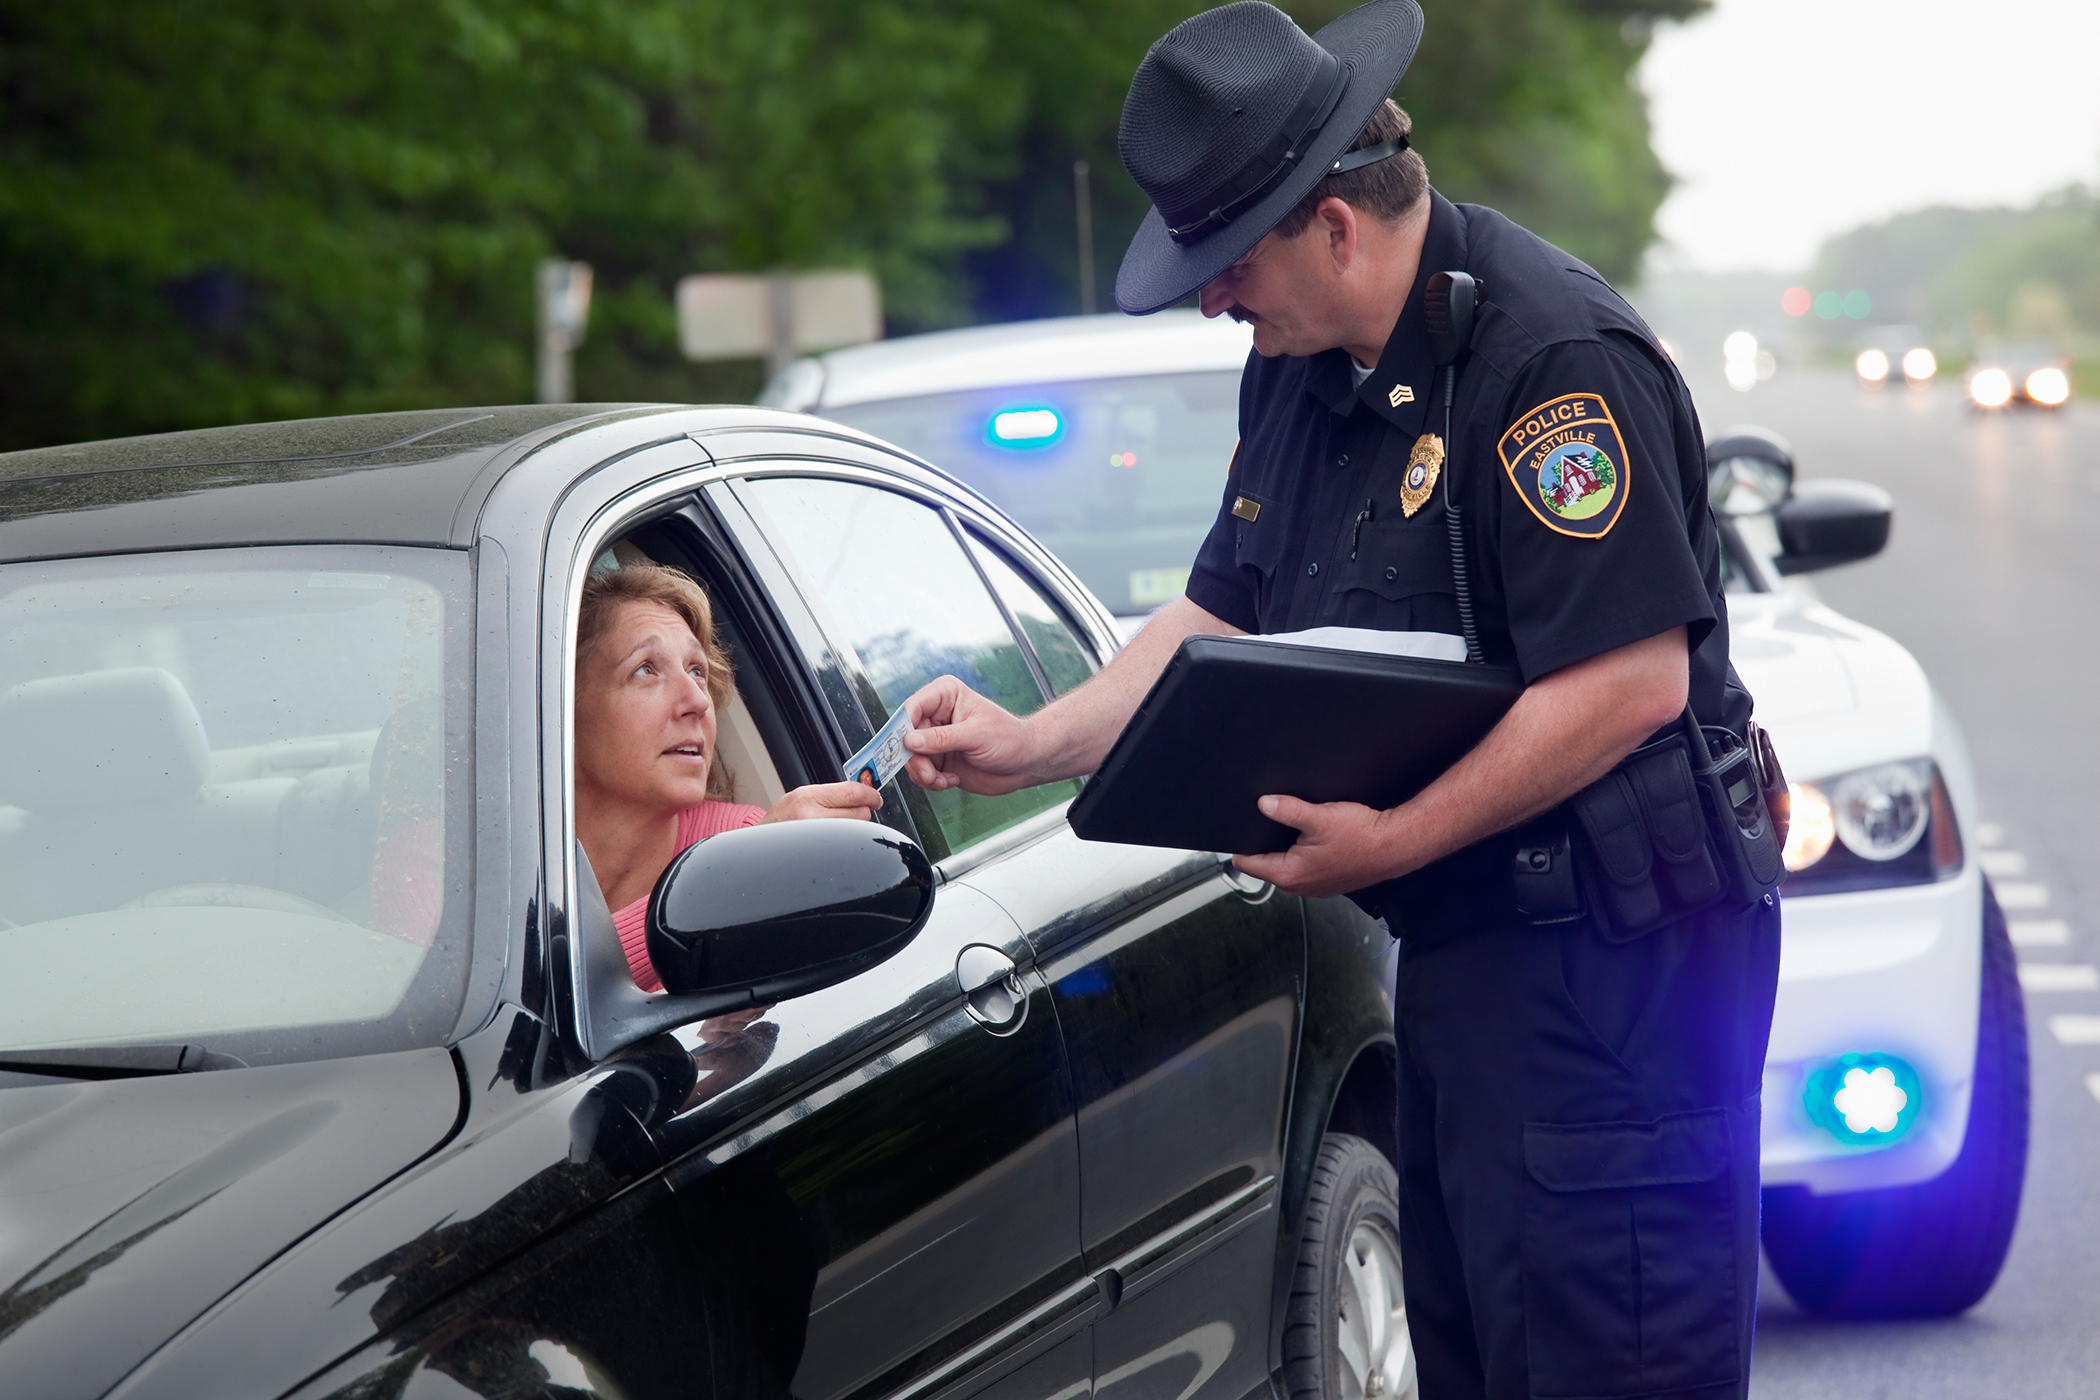 police officer handing out tickets